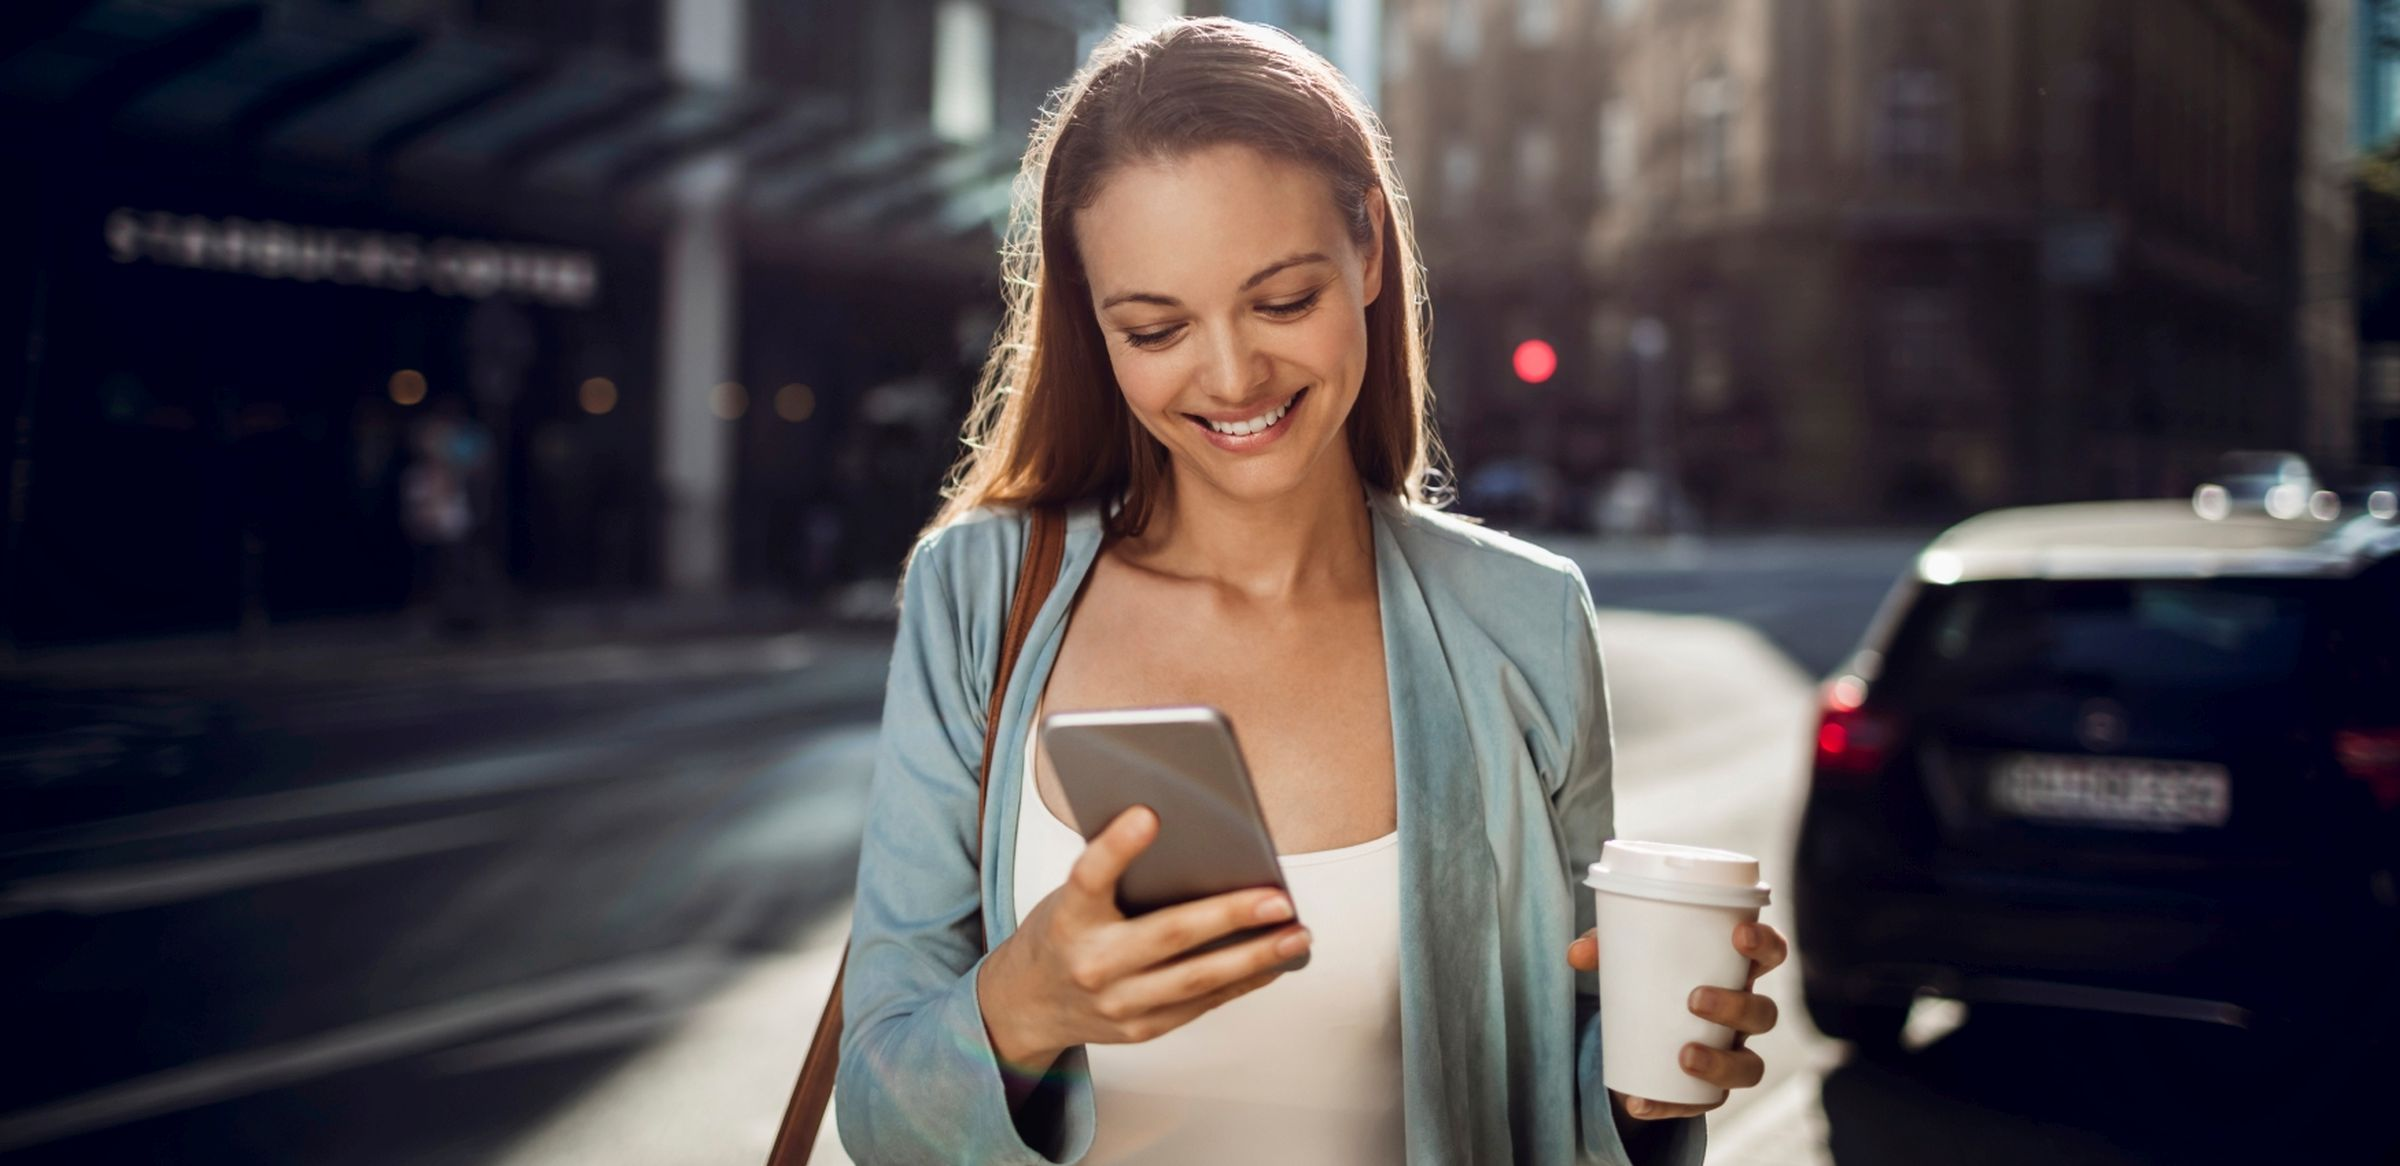 Woman typing on her mobile phone, smiling and holding coffee